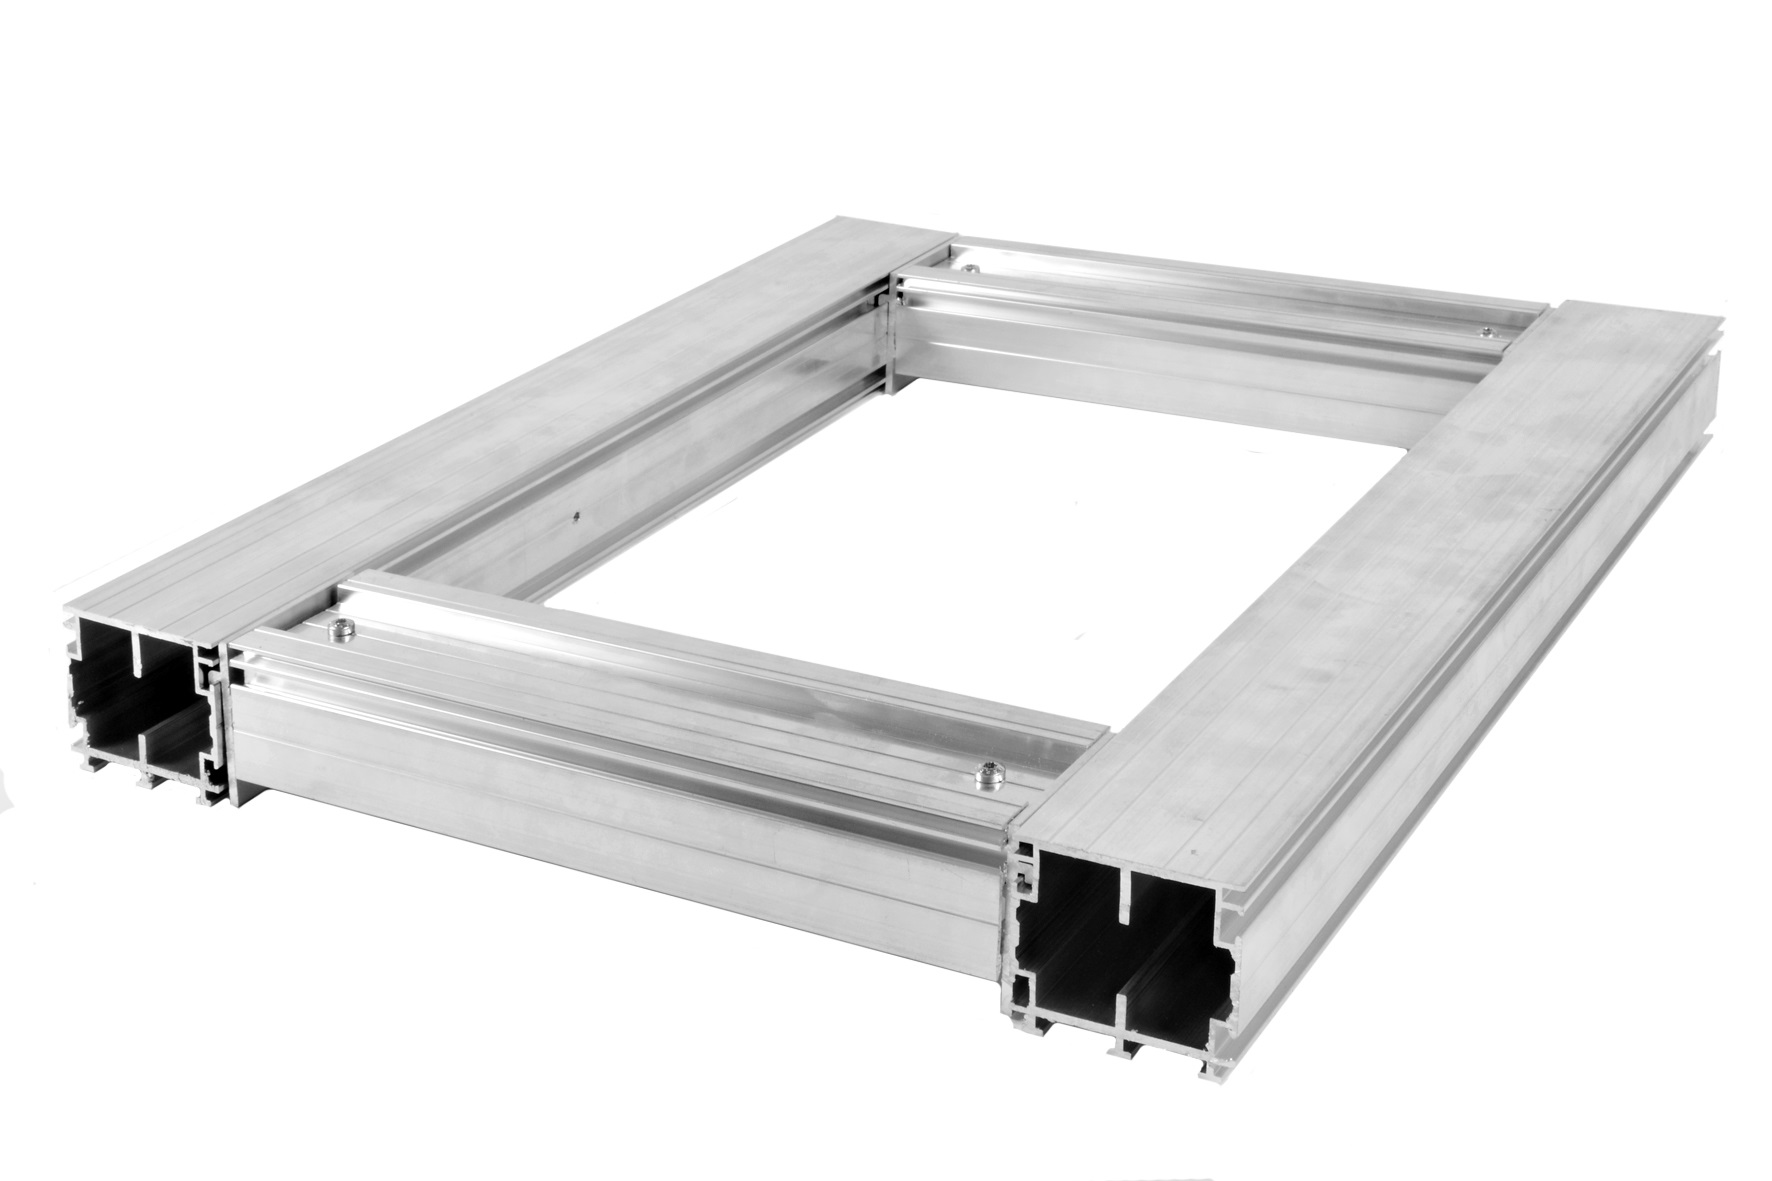 60mm x 55mm x 4000mm Aluminium Joists for decking and paving stones ...